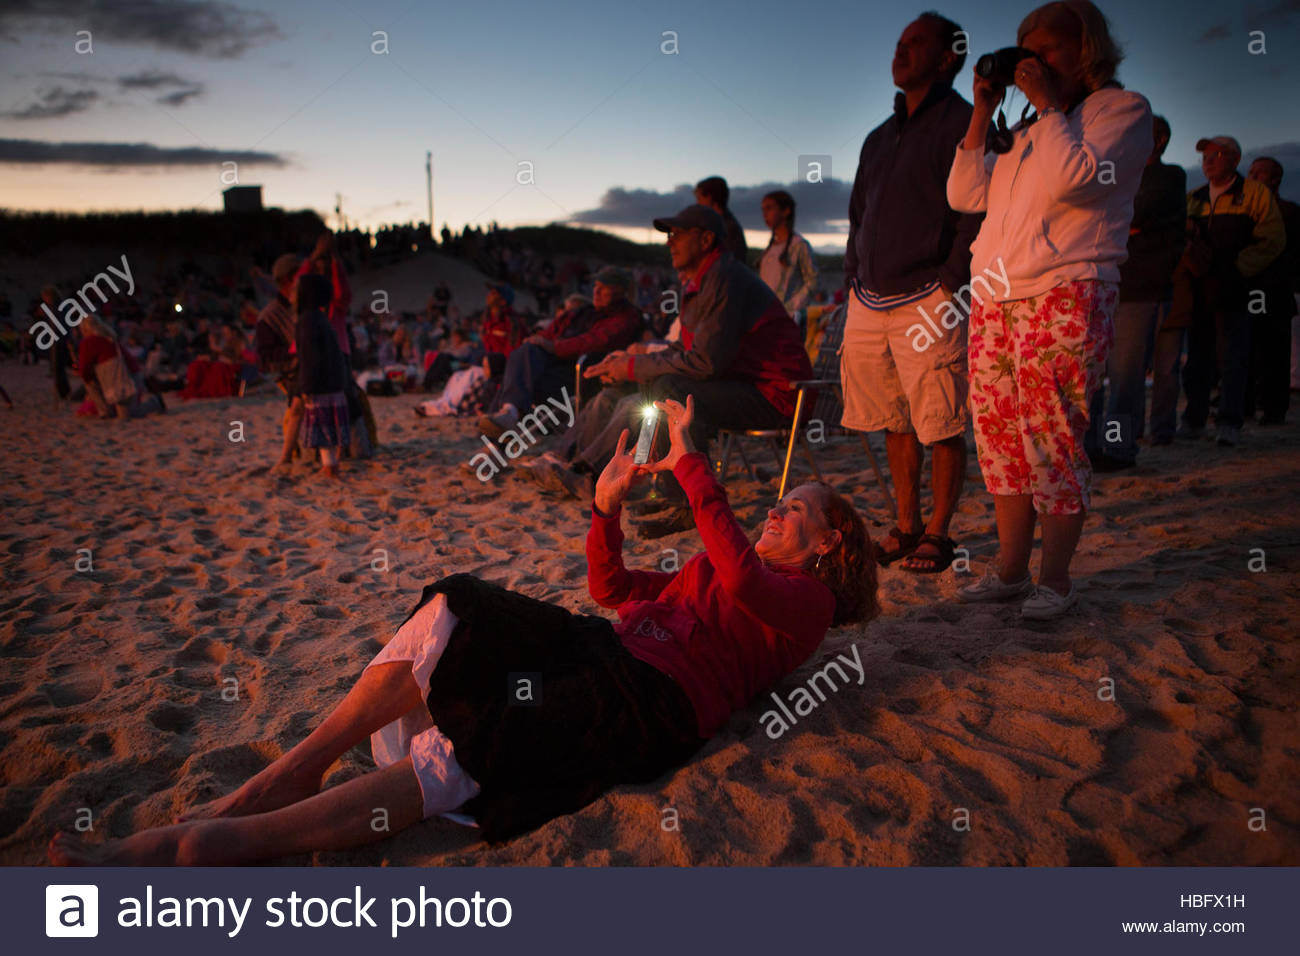 Onlookers photograph and gaze at a bonfire on Nauset Beach. - Stock Image